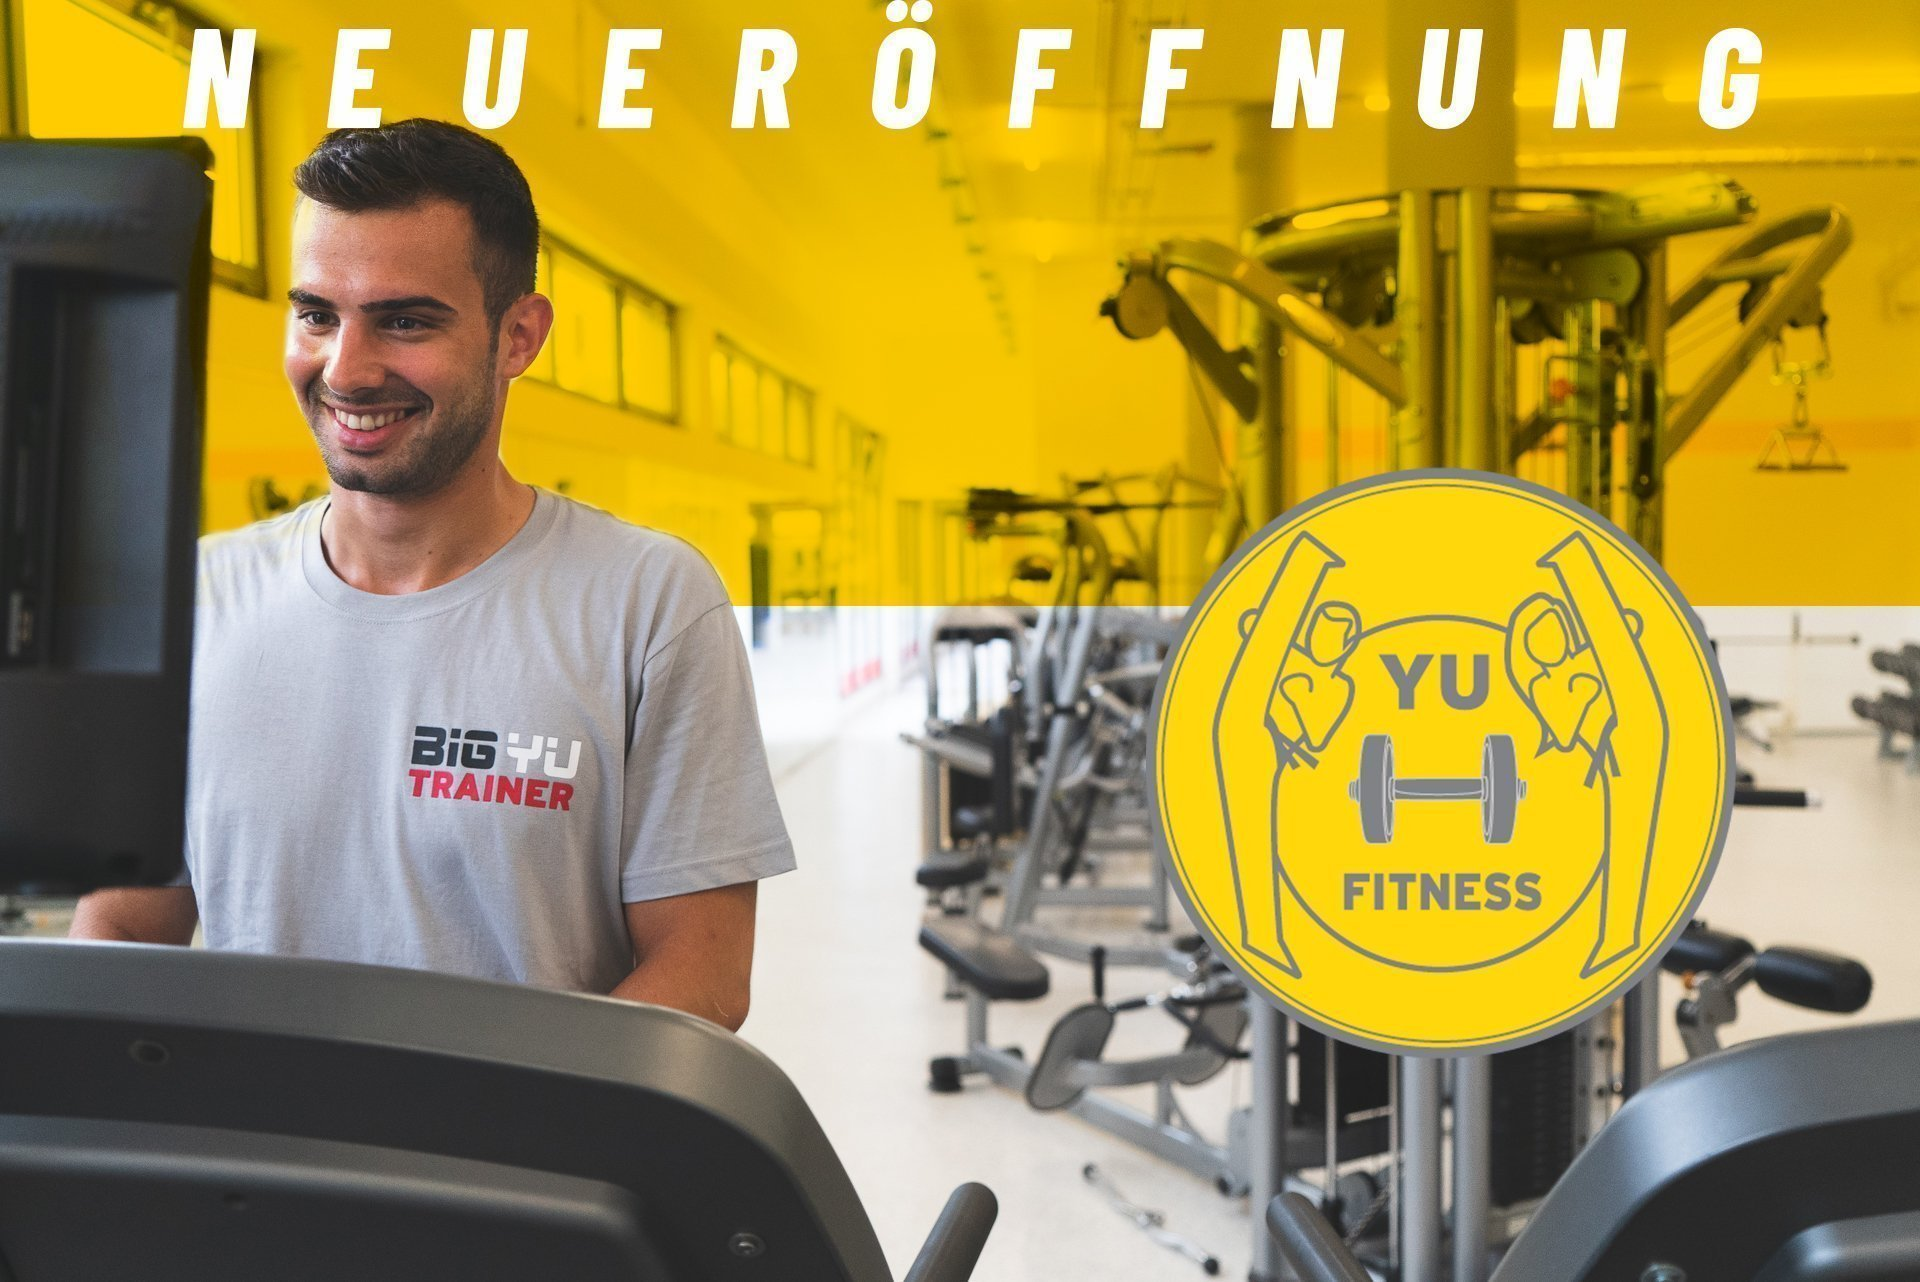 YU-Fitness: Ab 29.2. in Hietzing